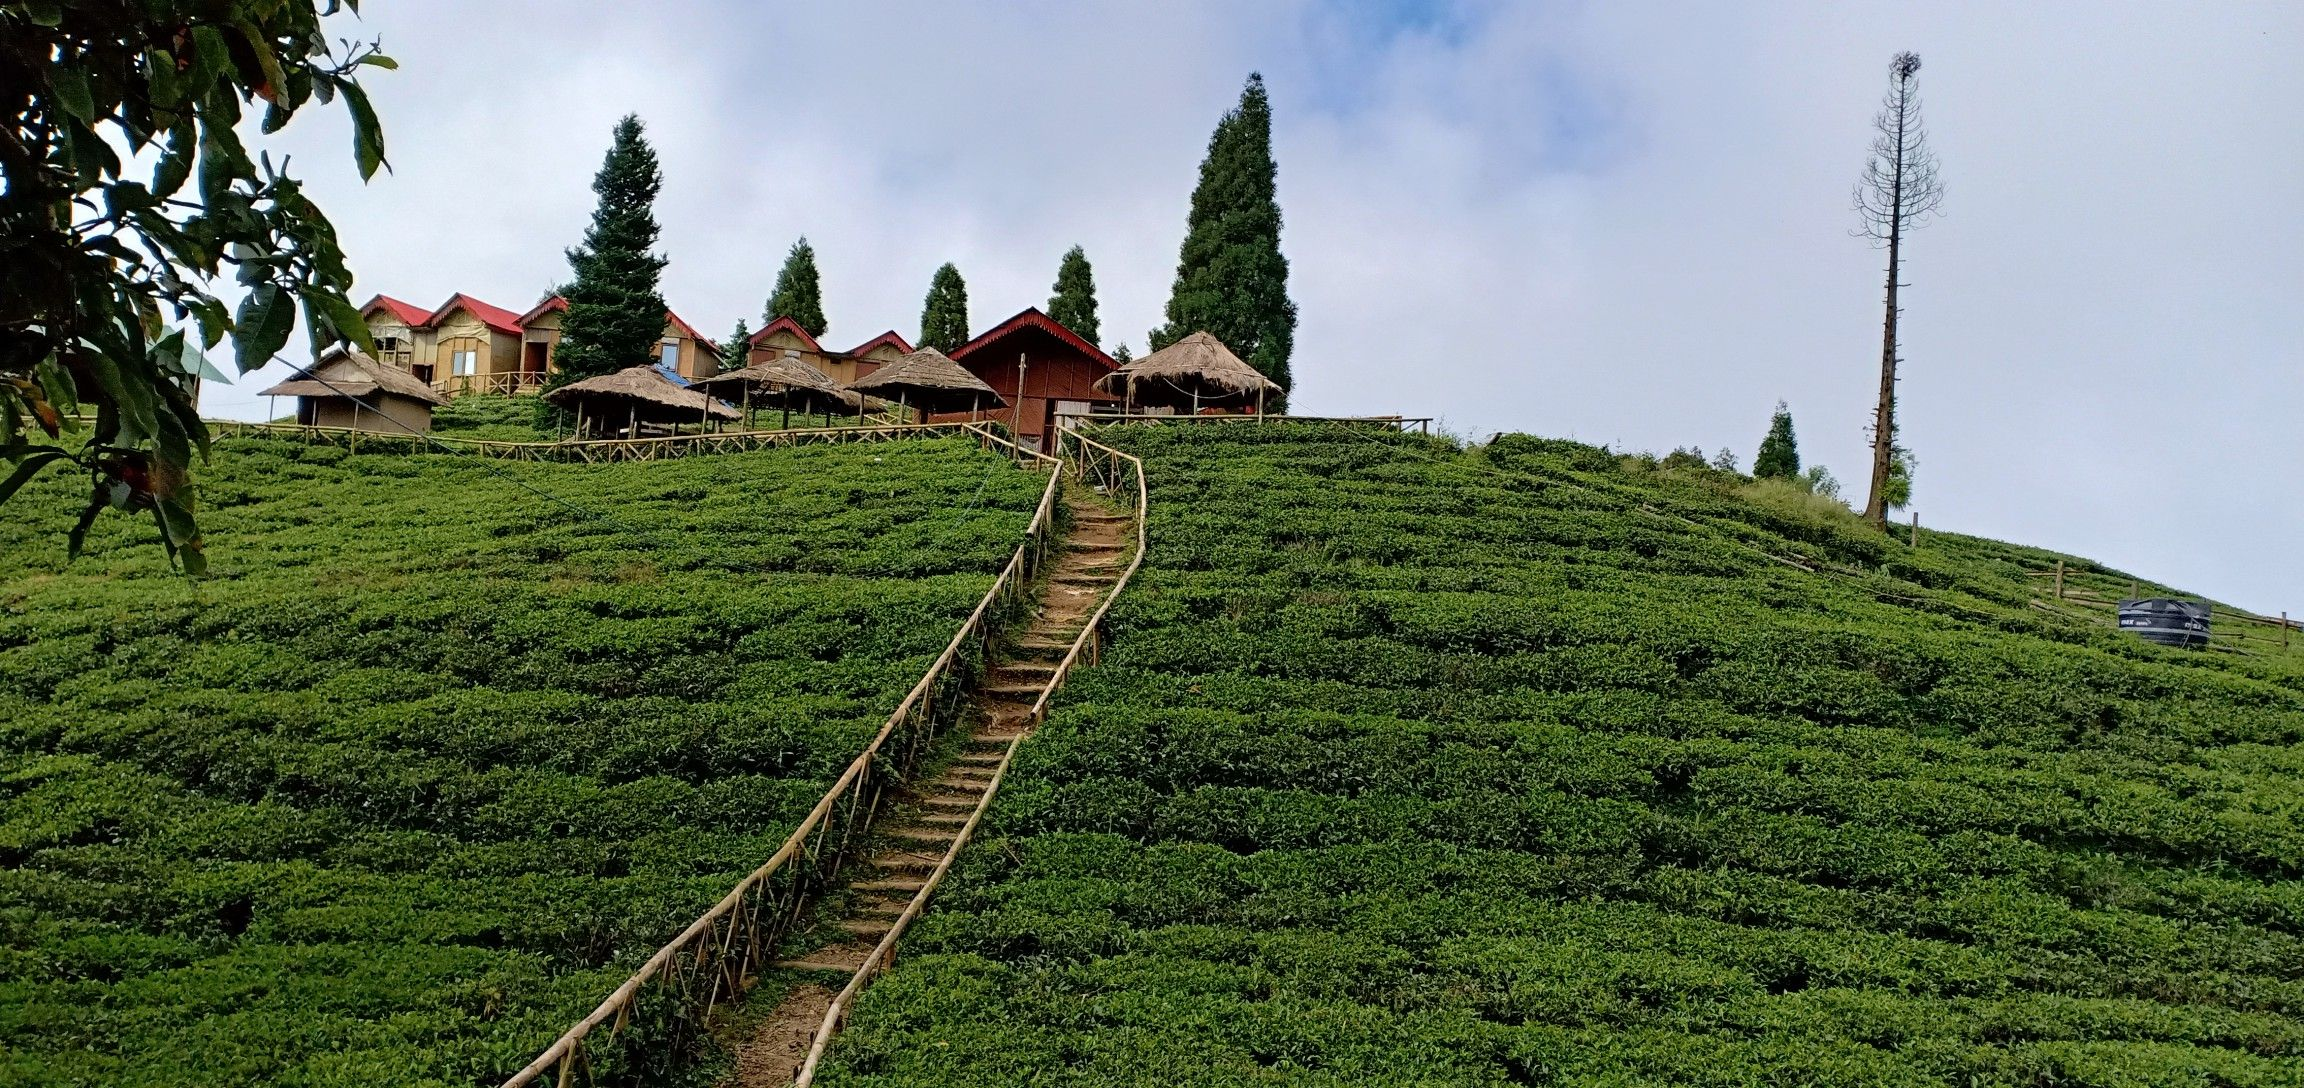 community homestay in Ilam